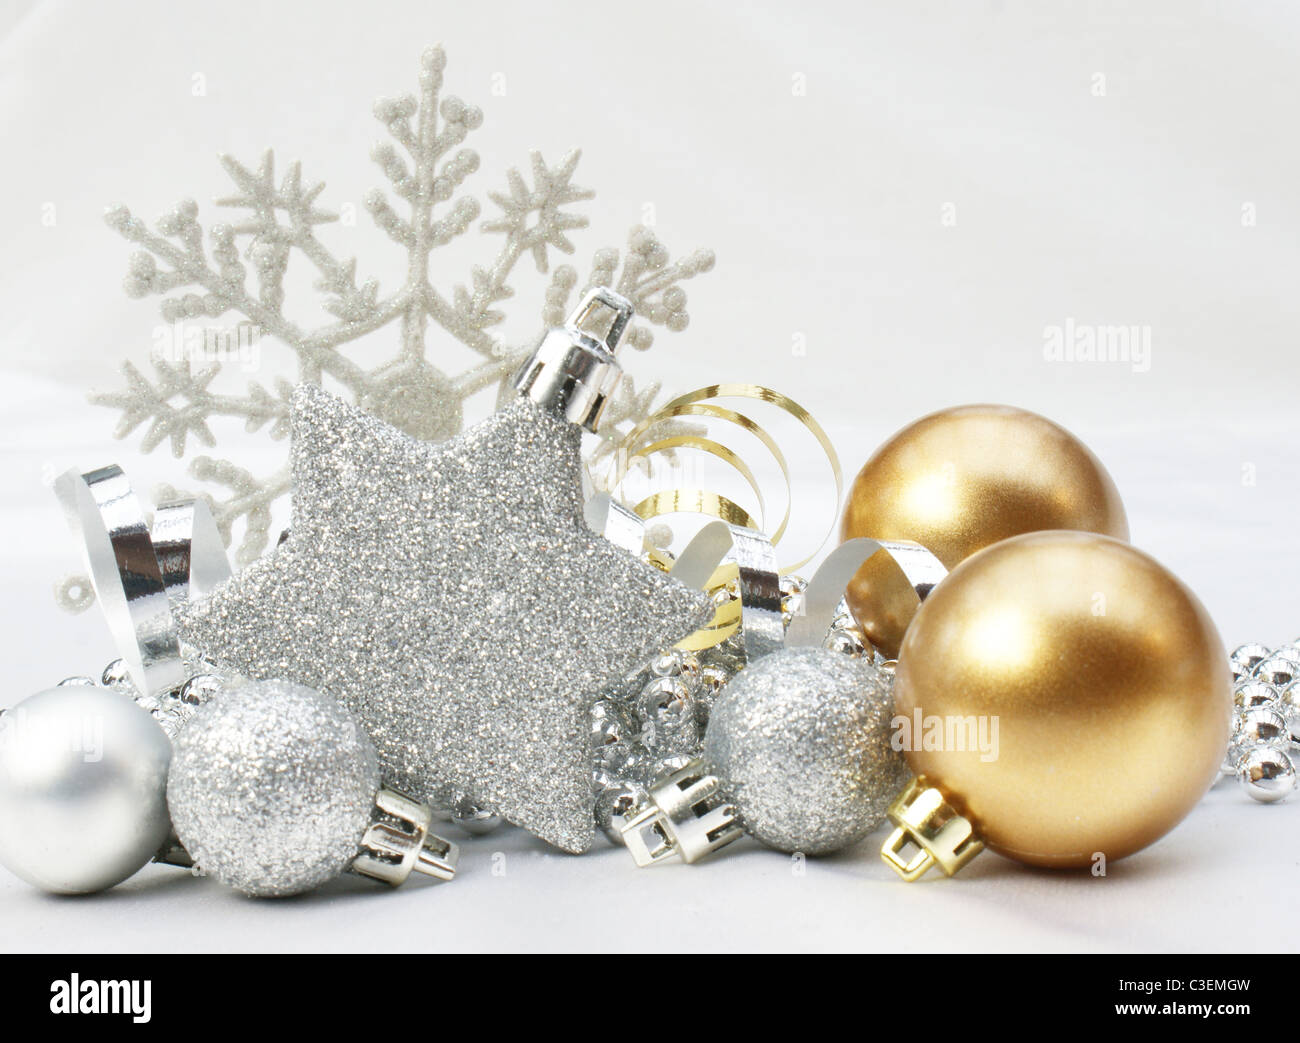 christmas background with gold and silver decorations